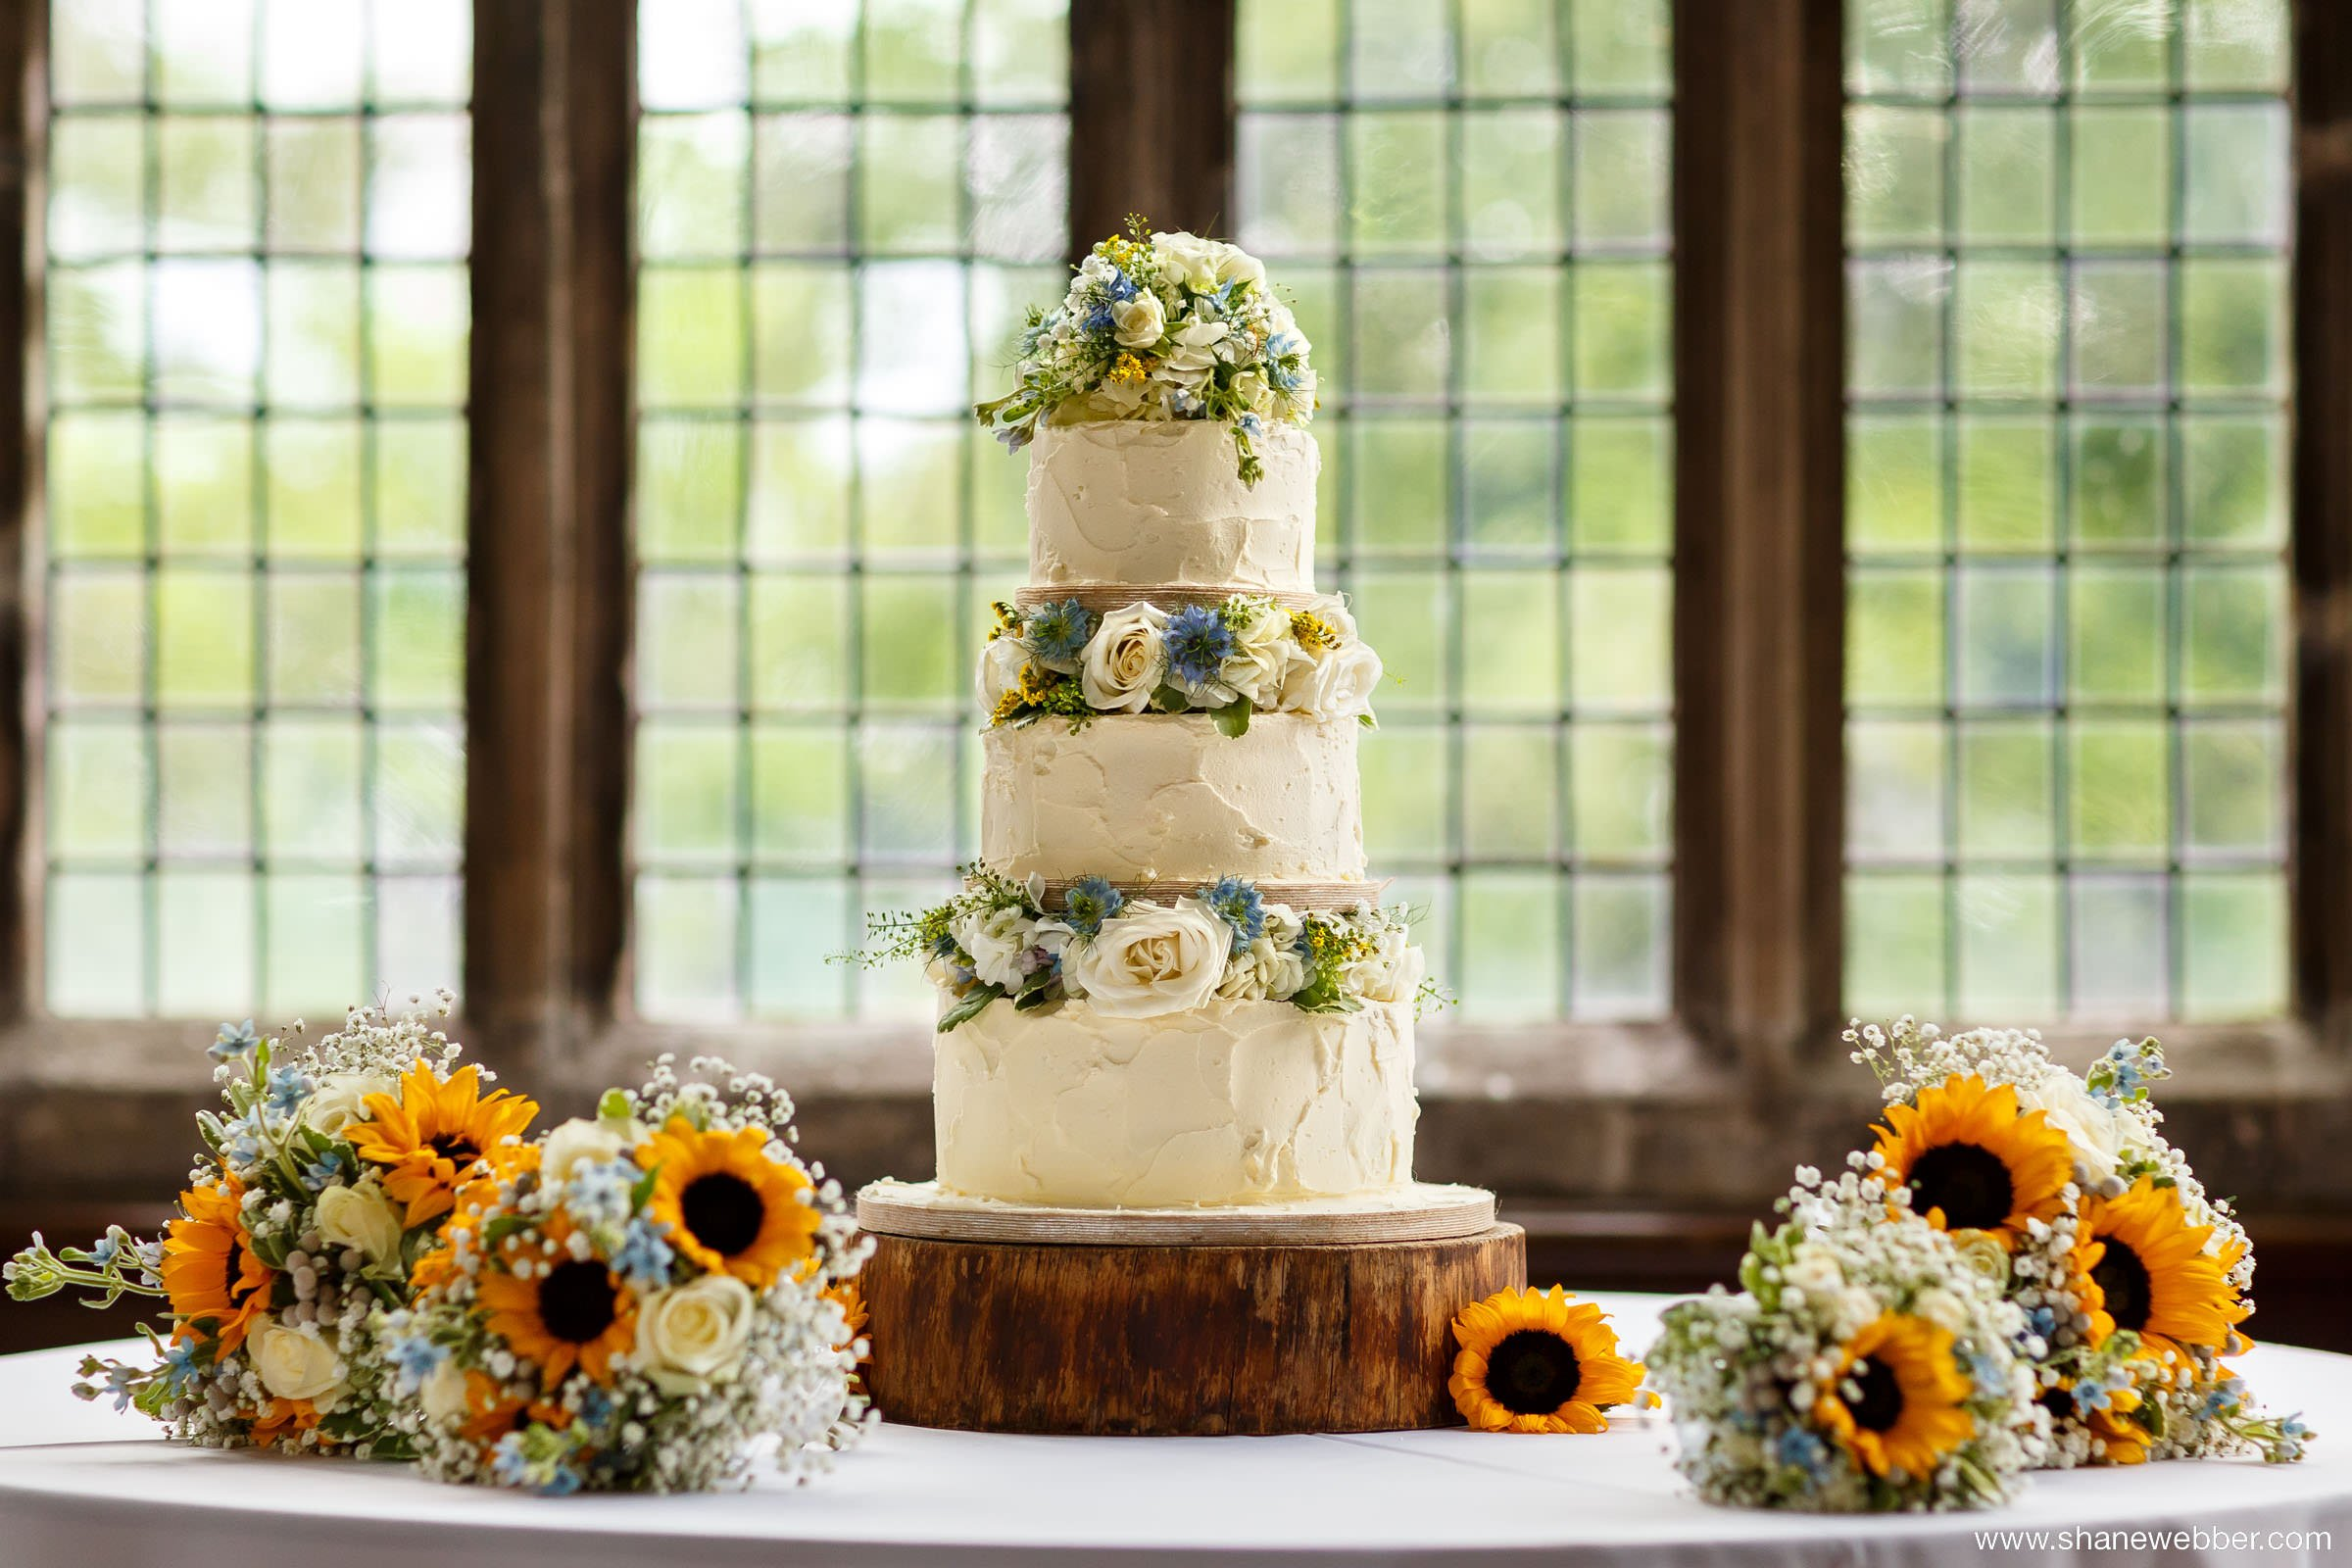 Rustic three tier wedding cake